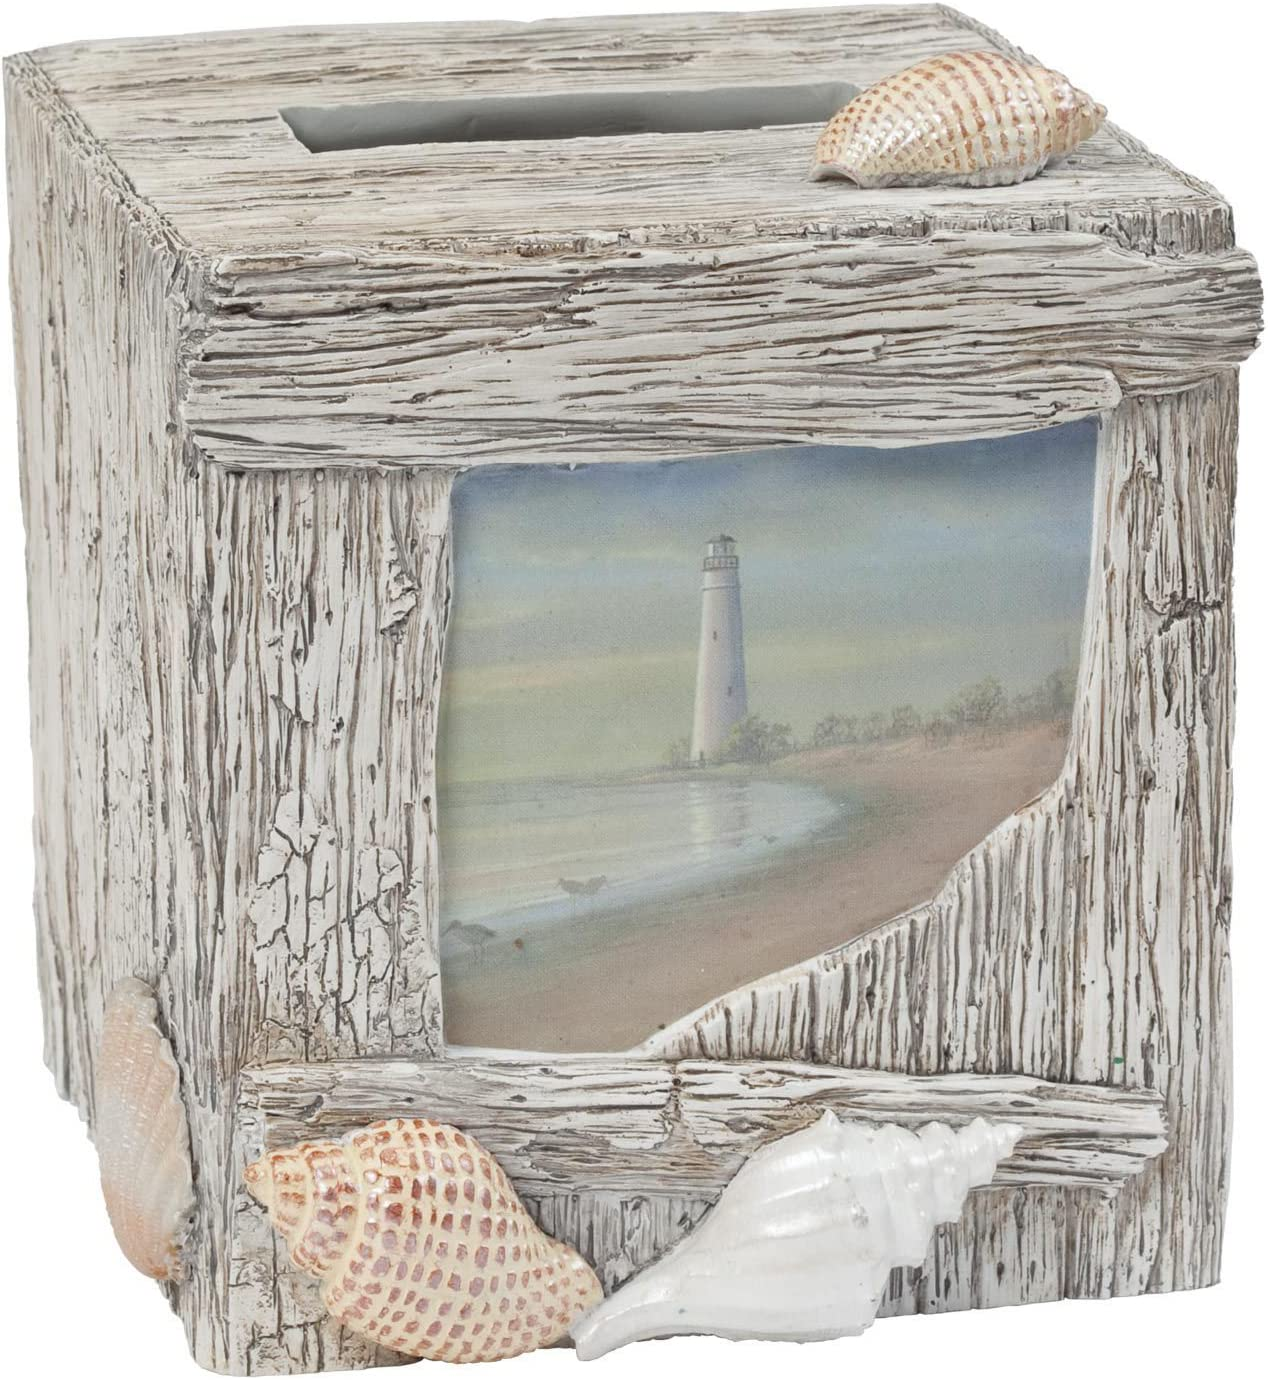 Creative Bath Products Inc. ATB58MULT Products at The Beach Boutique Tissue Cover, Box, Blue/Tan